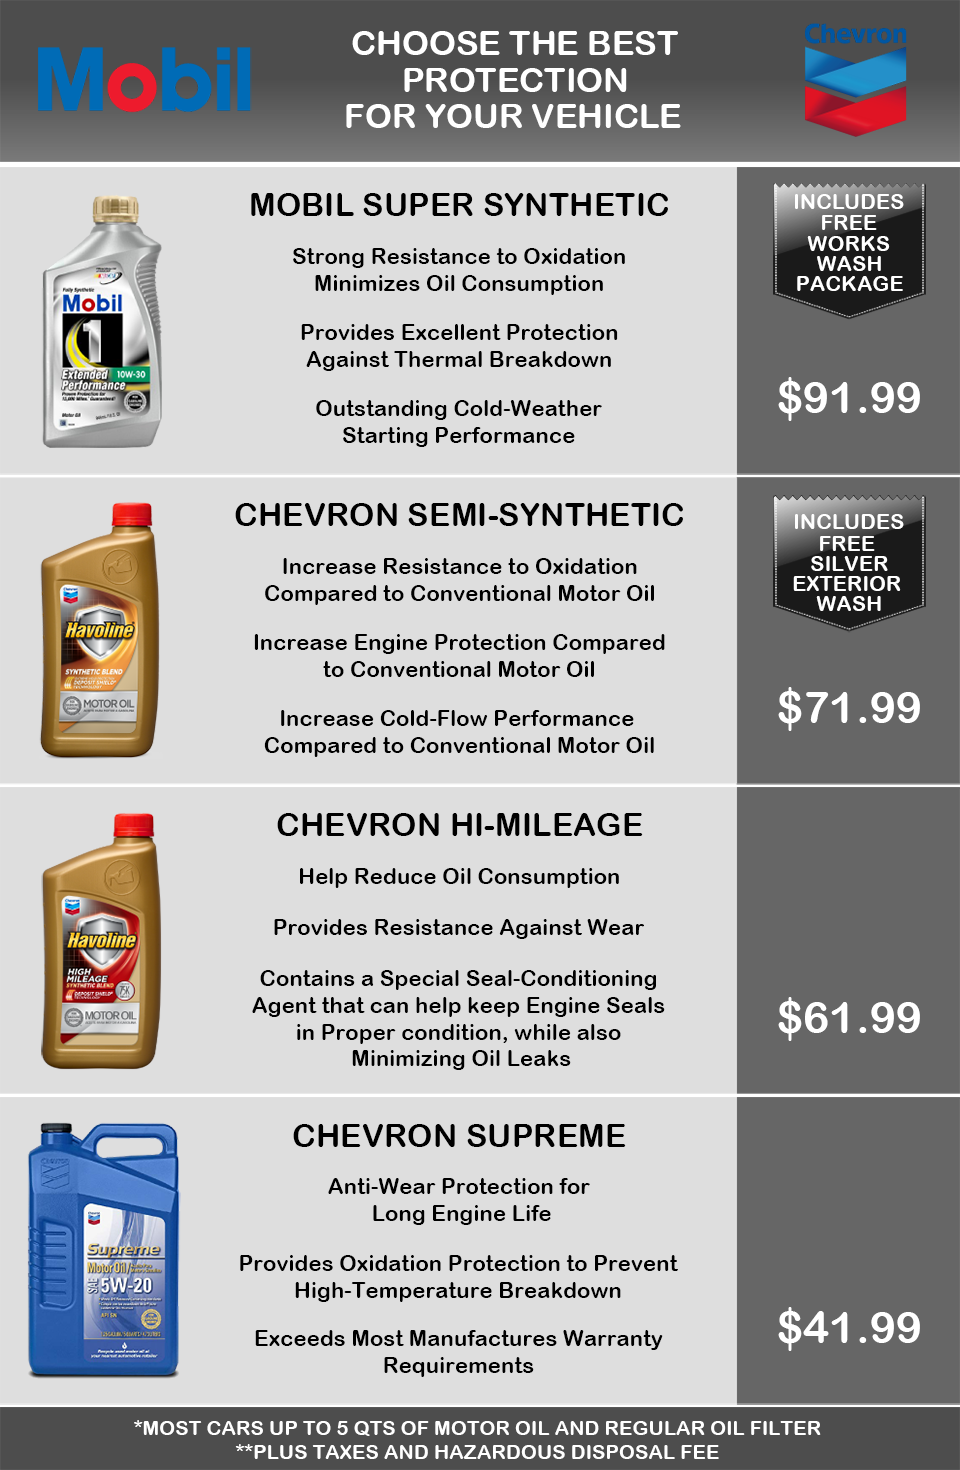 Manny's Oil Change: Mobil, Synthetic, Chevron, Semi Synthetic, Hi Mileage, Supreme, Conventional, Free Wash